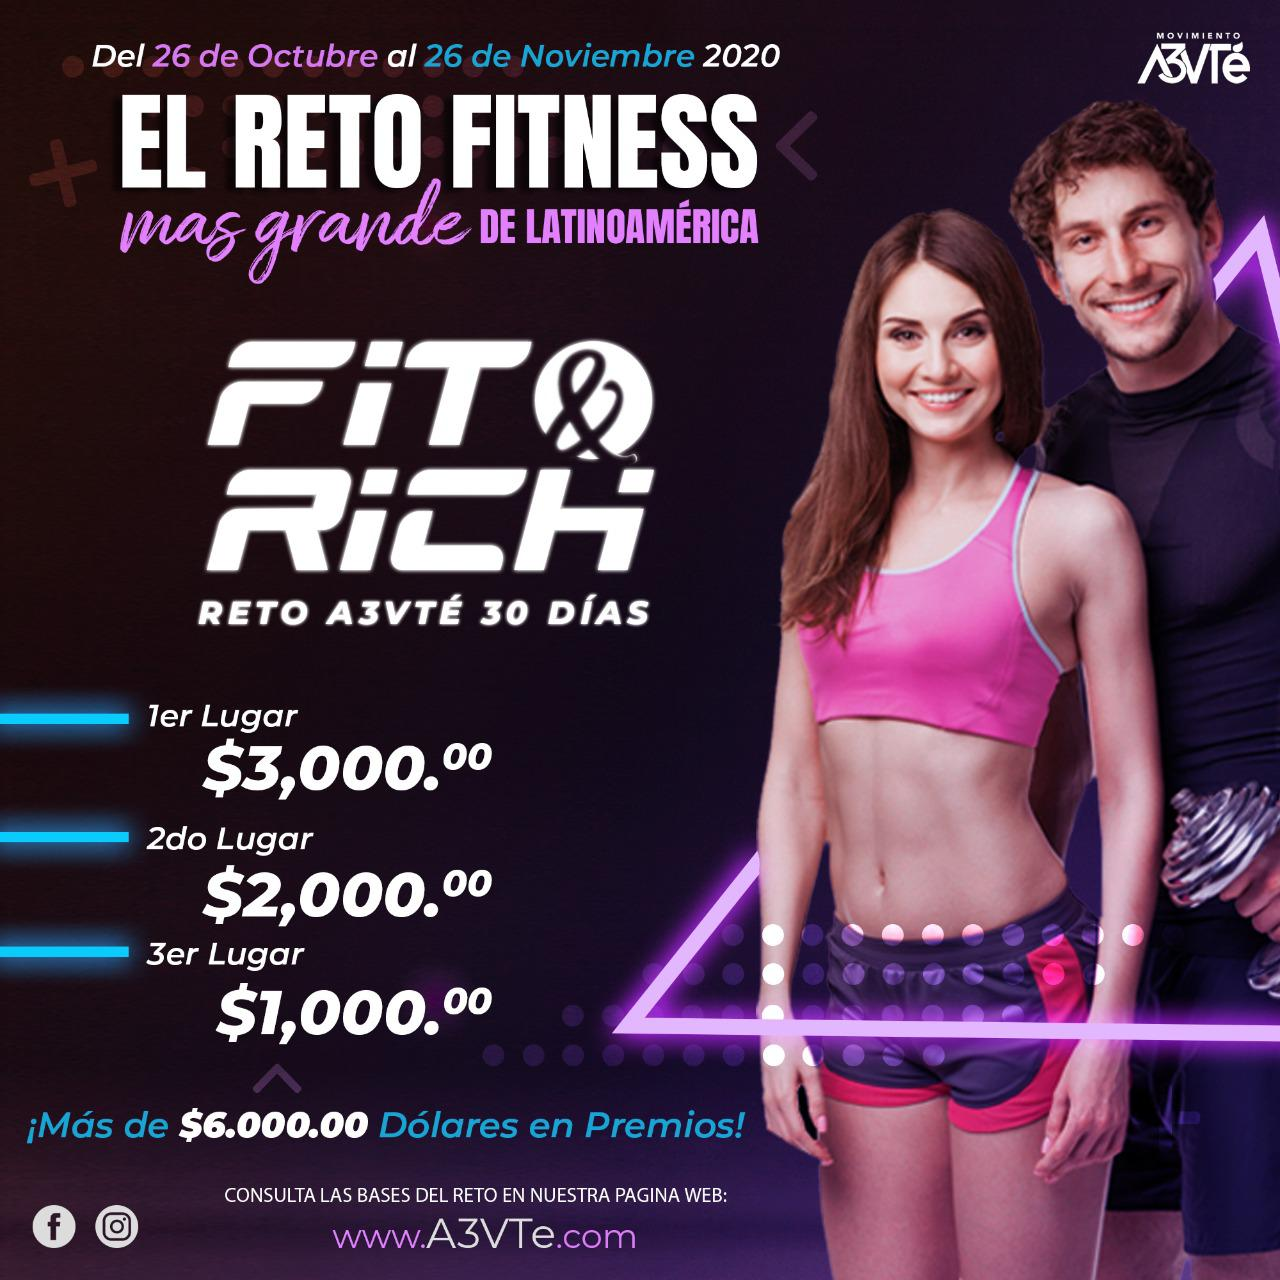 Reto Fit & Rich de 30 días 3